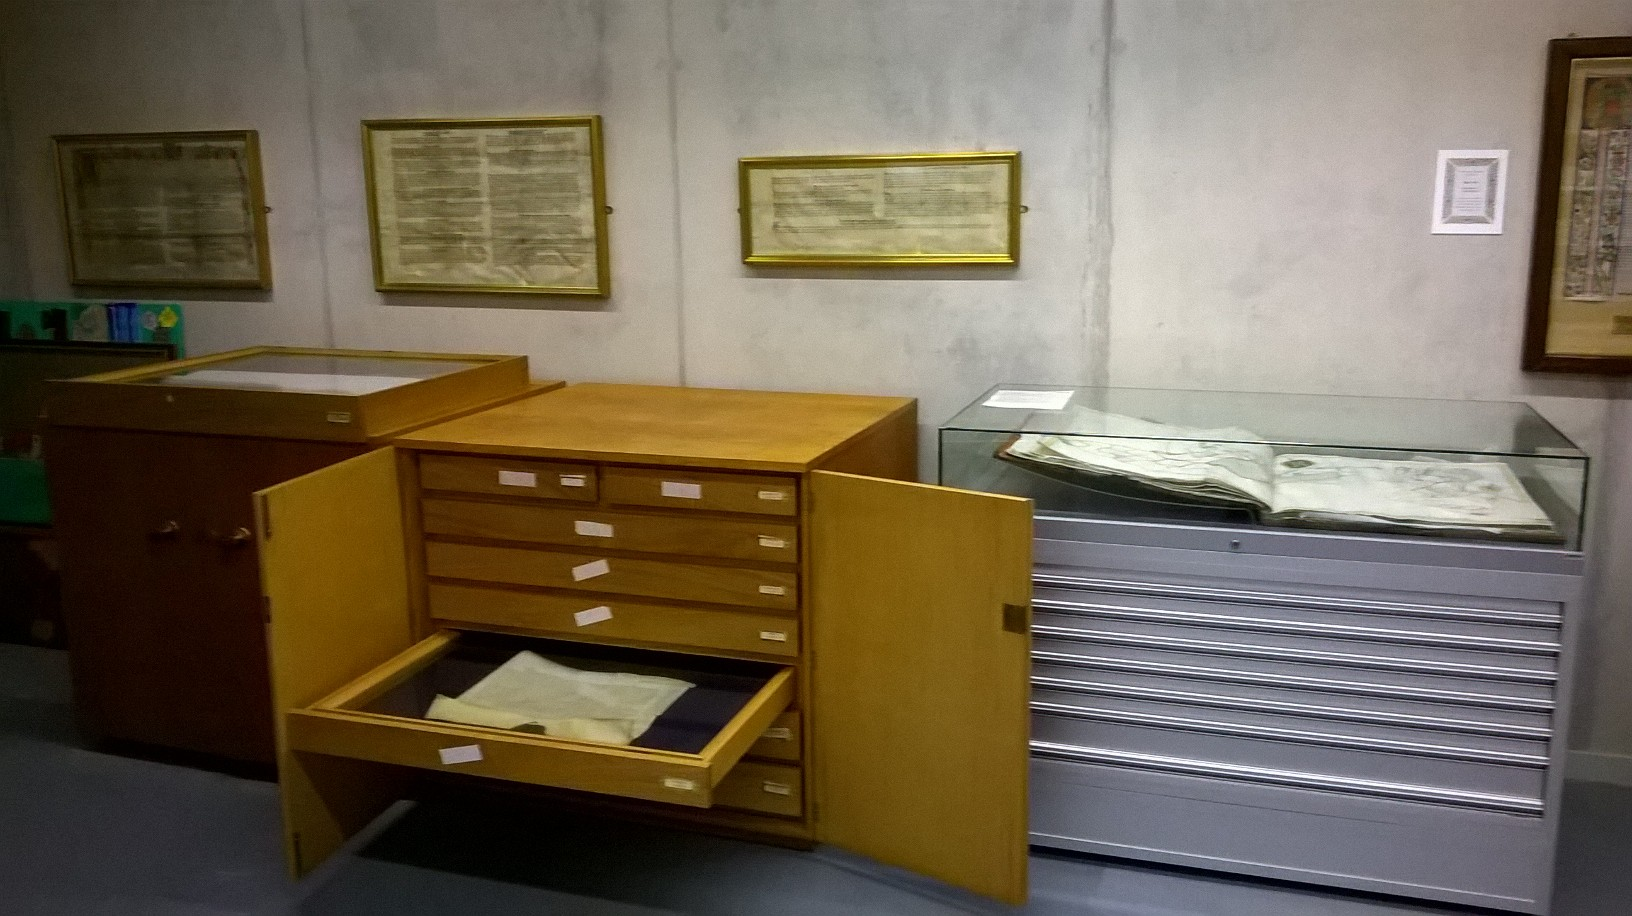 View of the archives